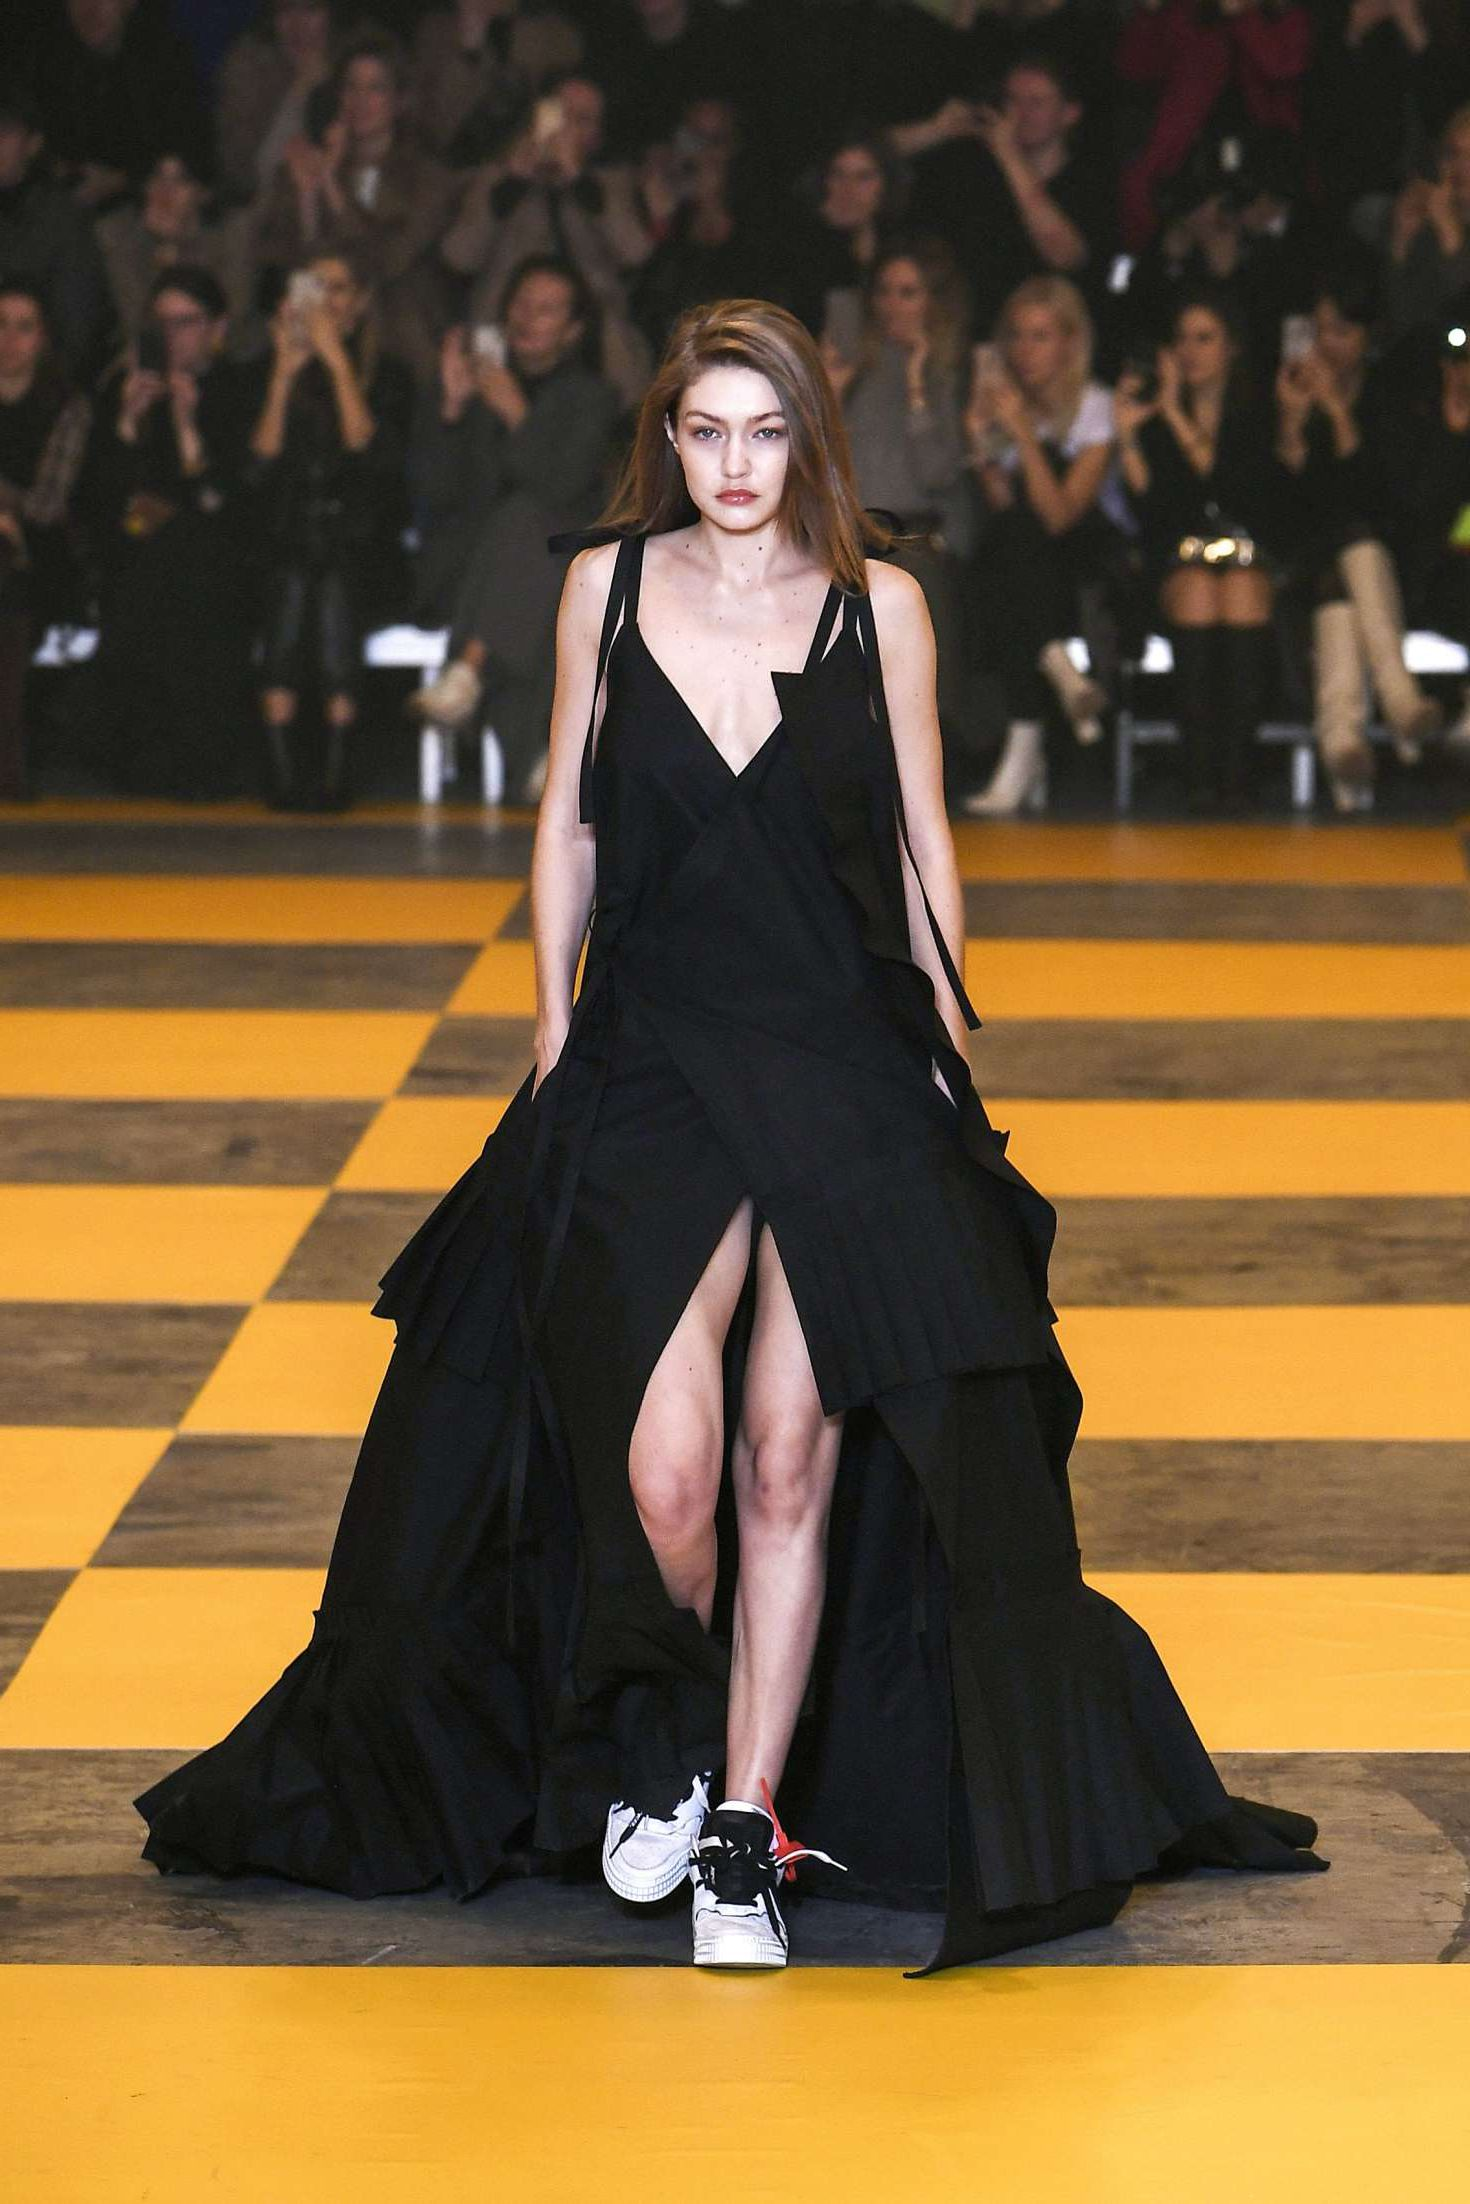 Gigi Hadid in beautiful black dress at the Off-White Women's Runway Show in Paris, 2019